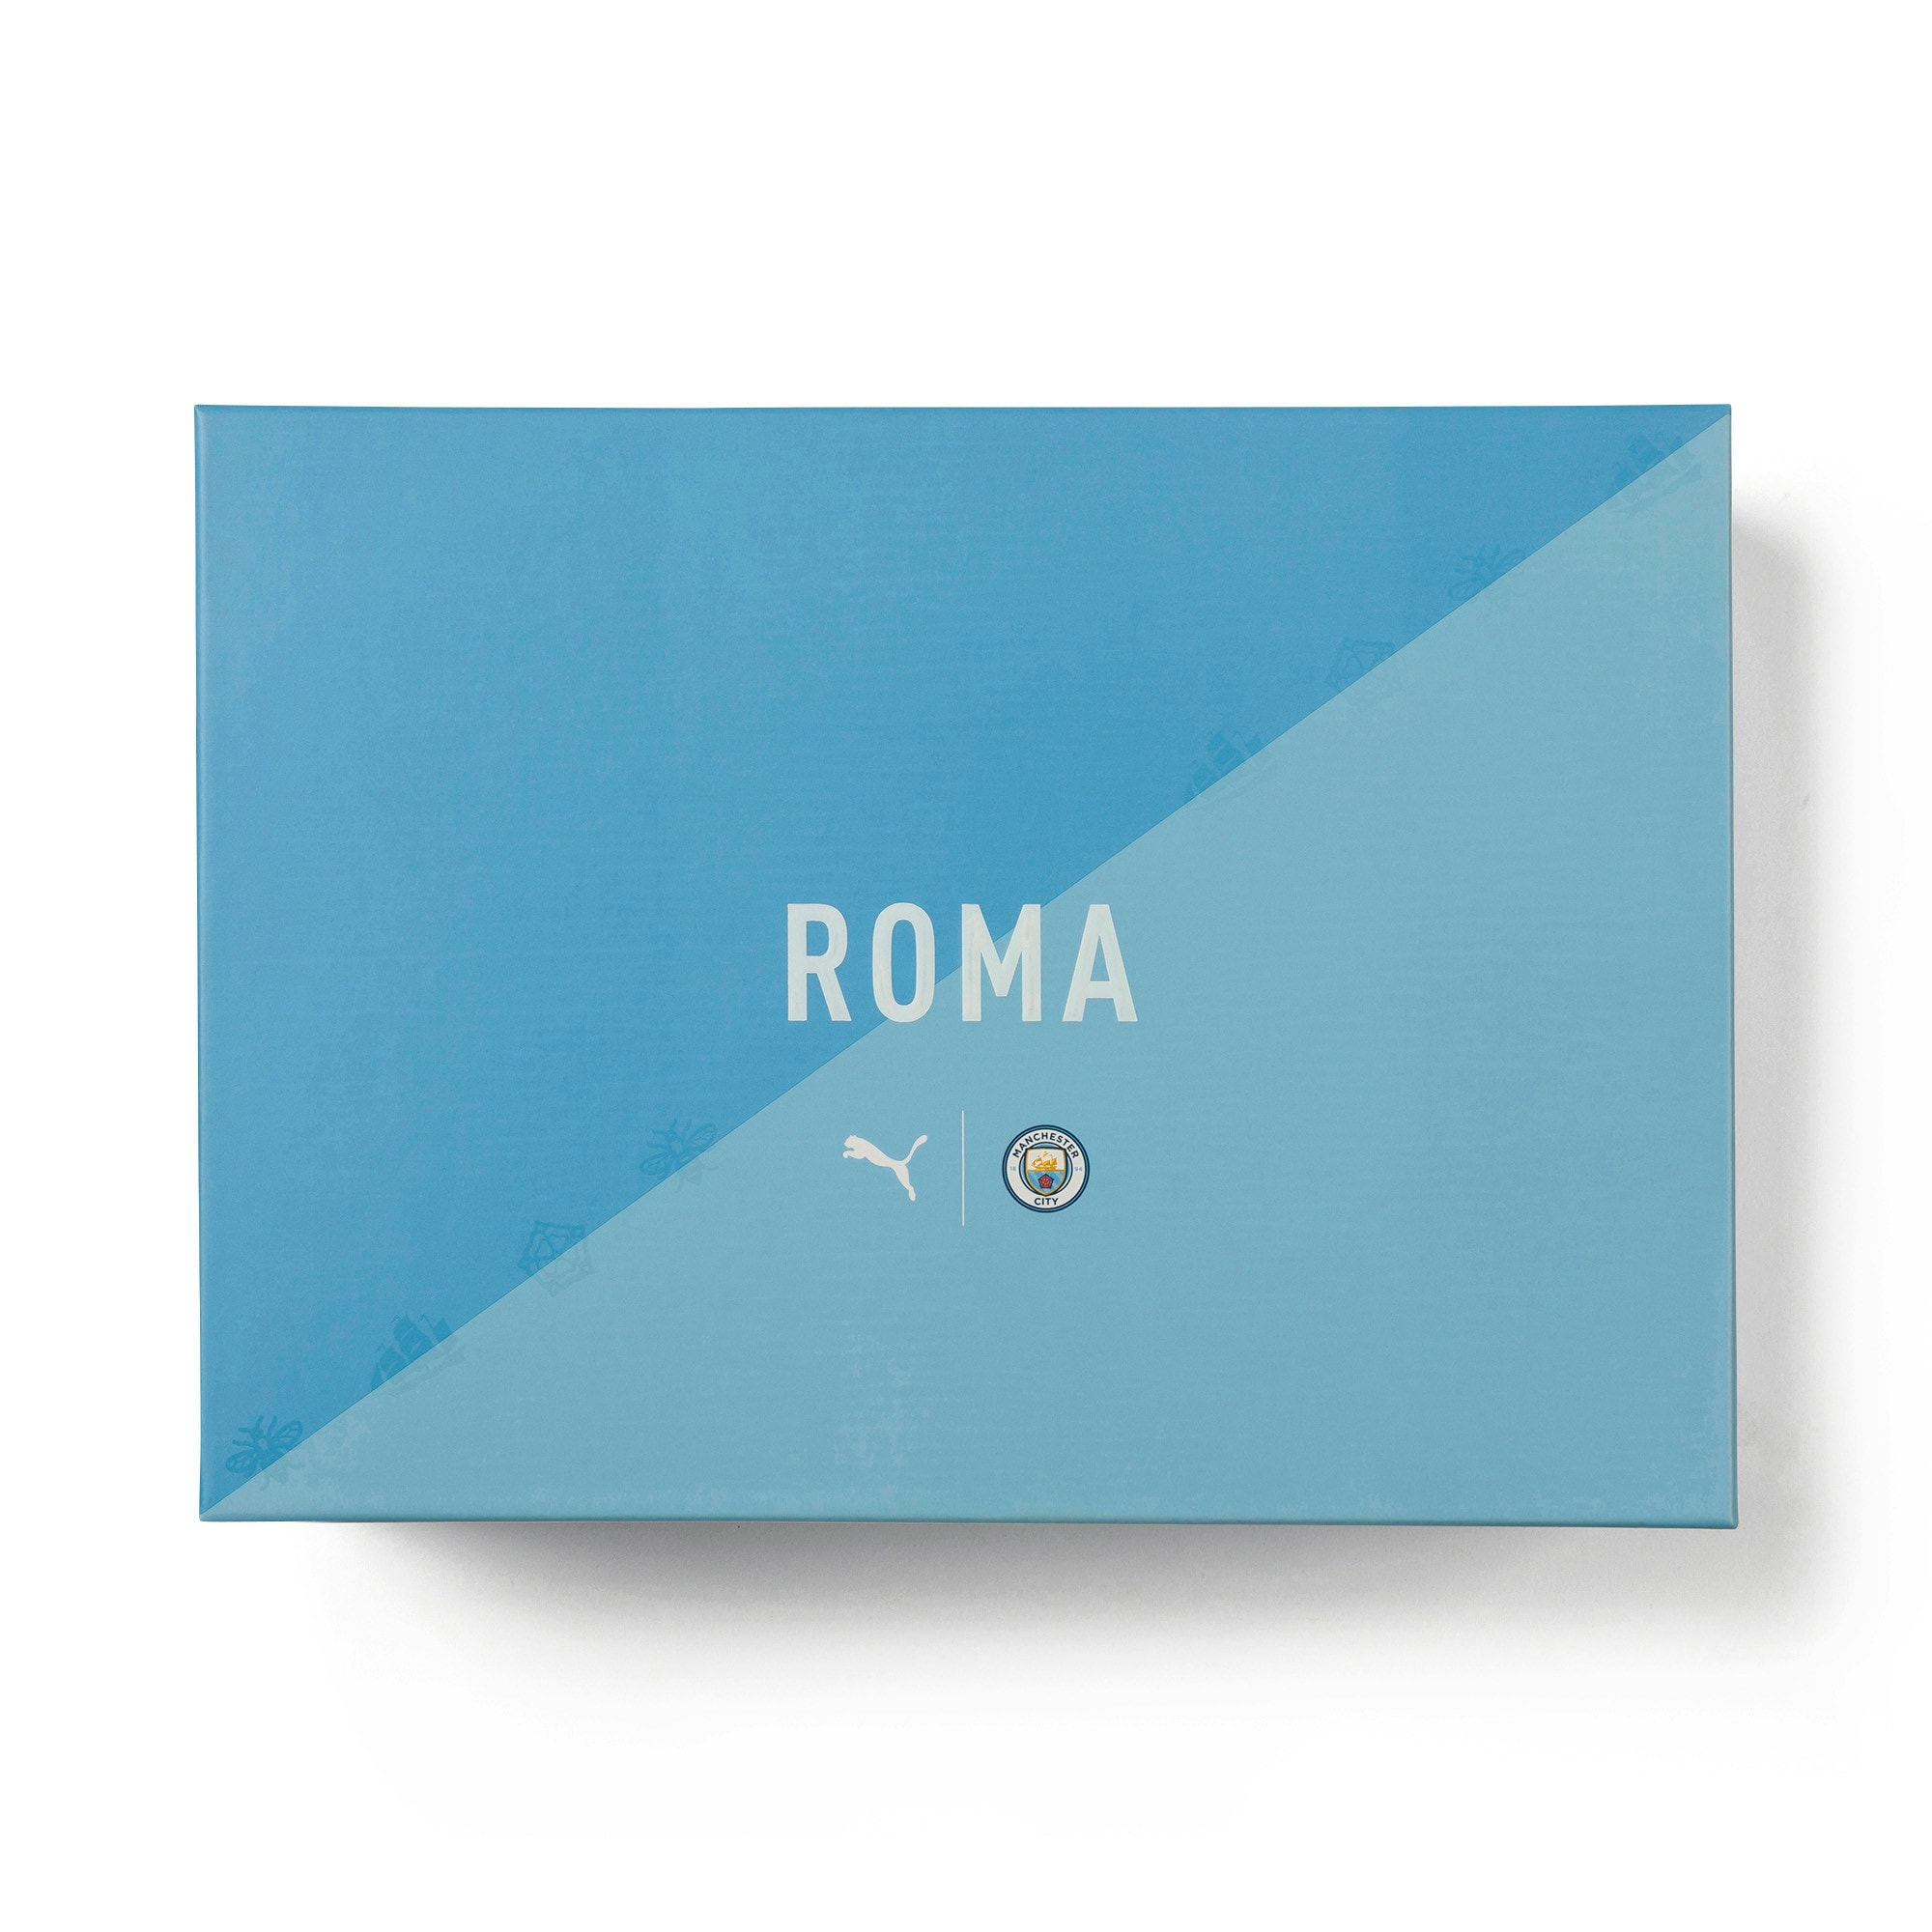 Thumbnail 7 of Roma x Manchester City sportschoenen, Gray Violet-Team Light Blue, medium